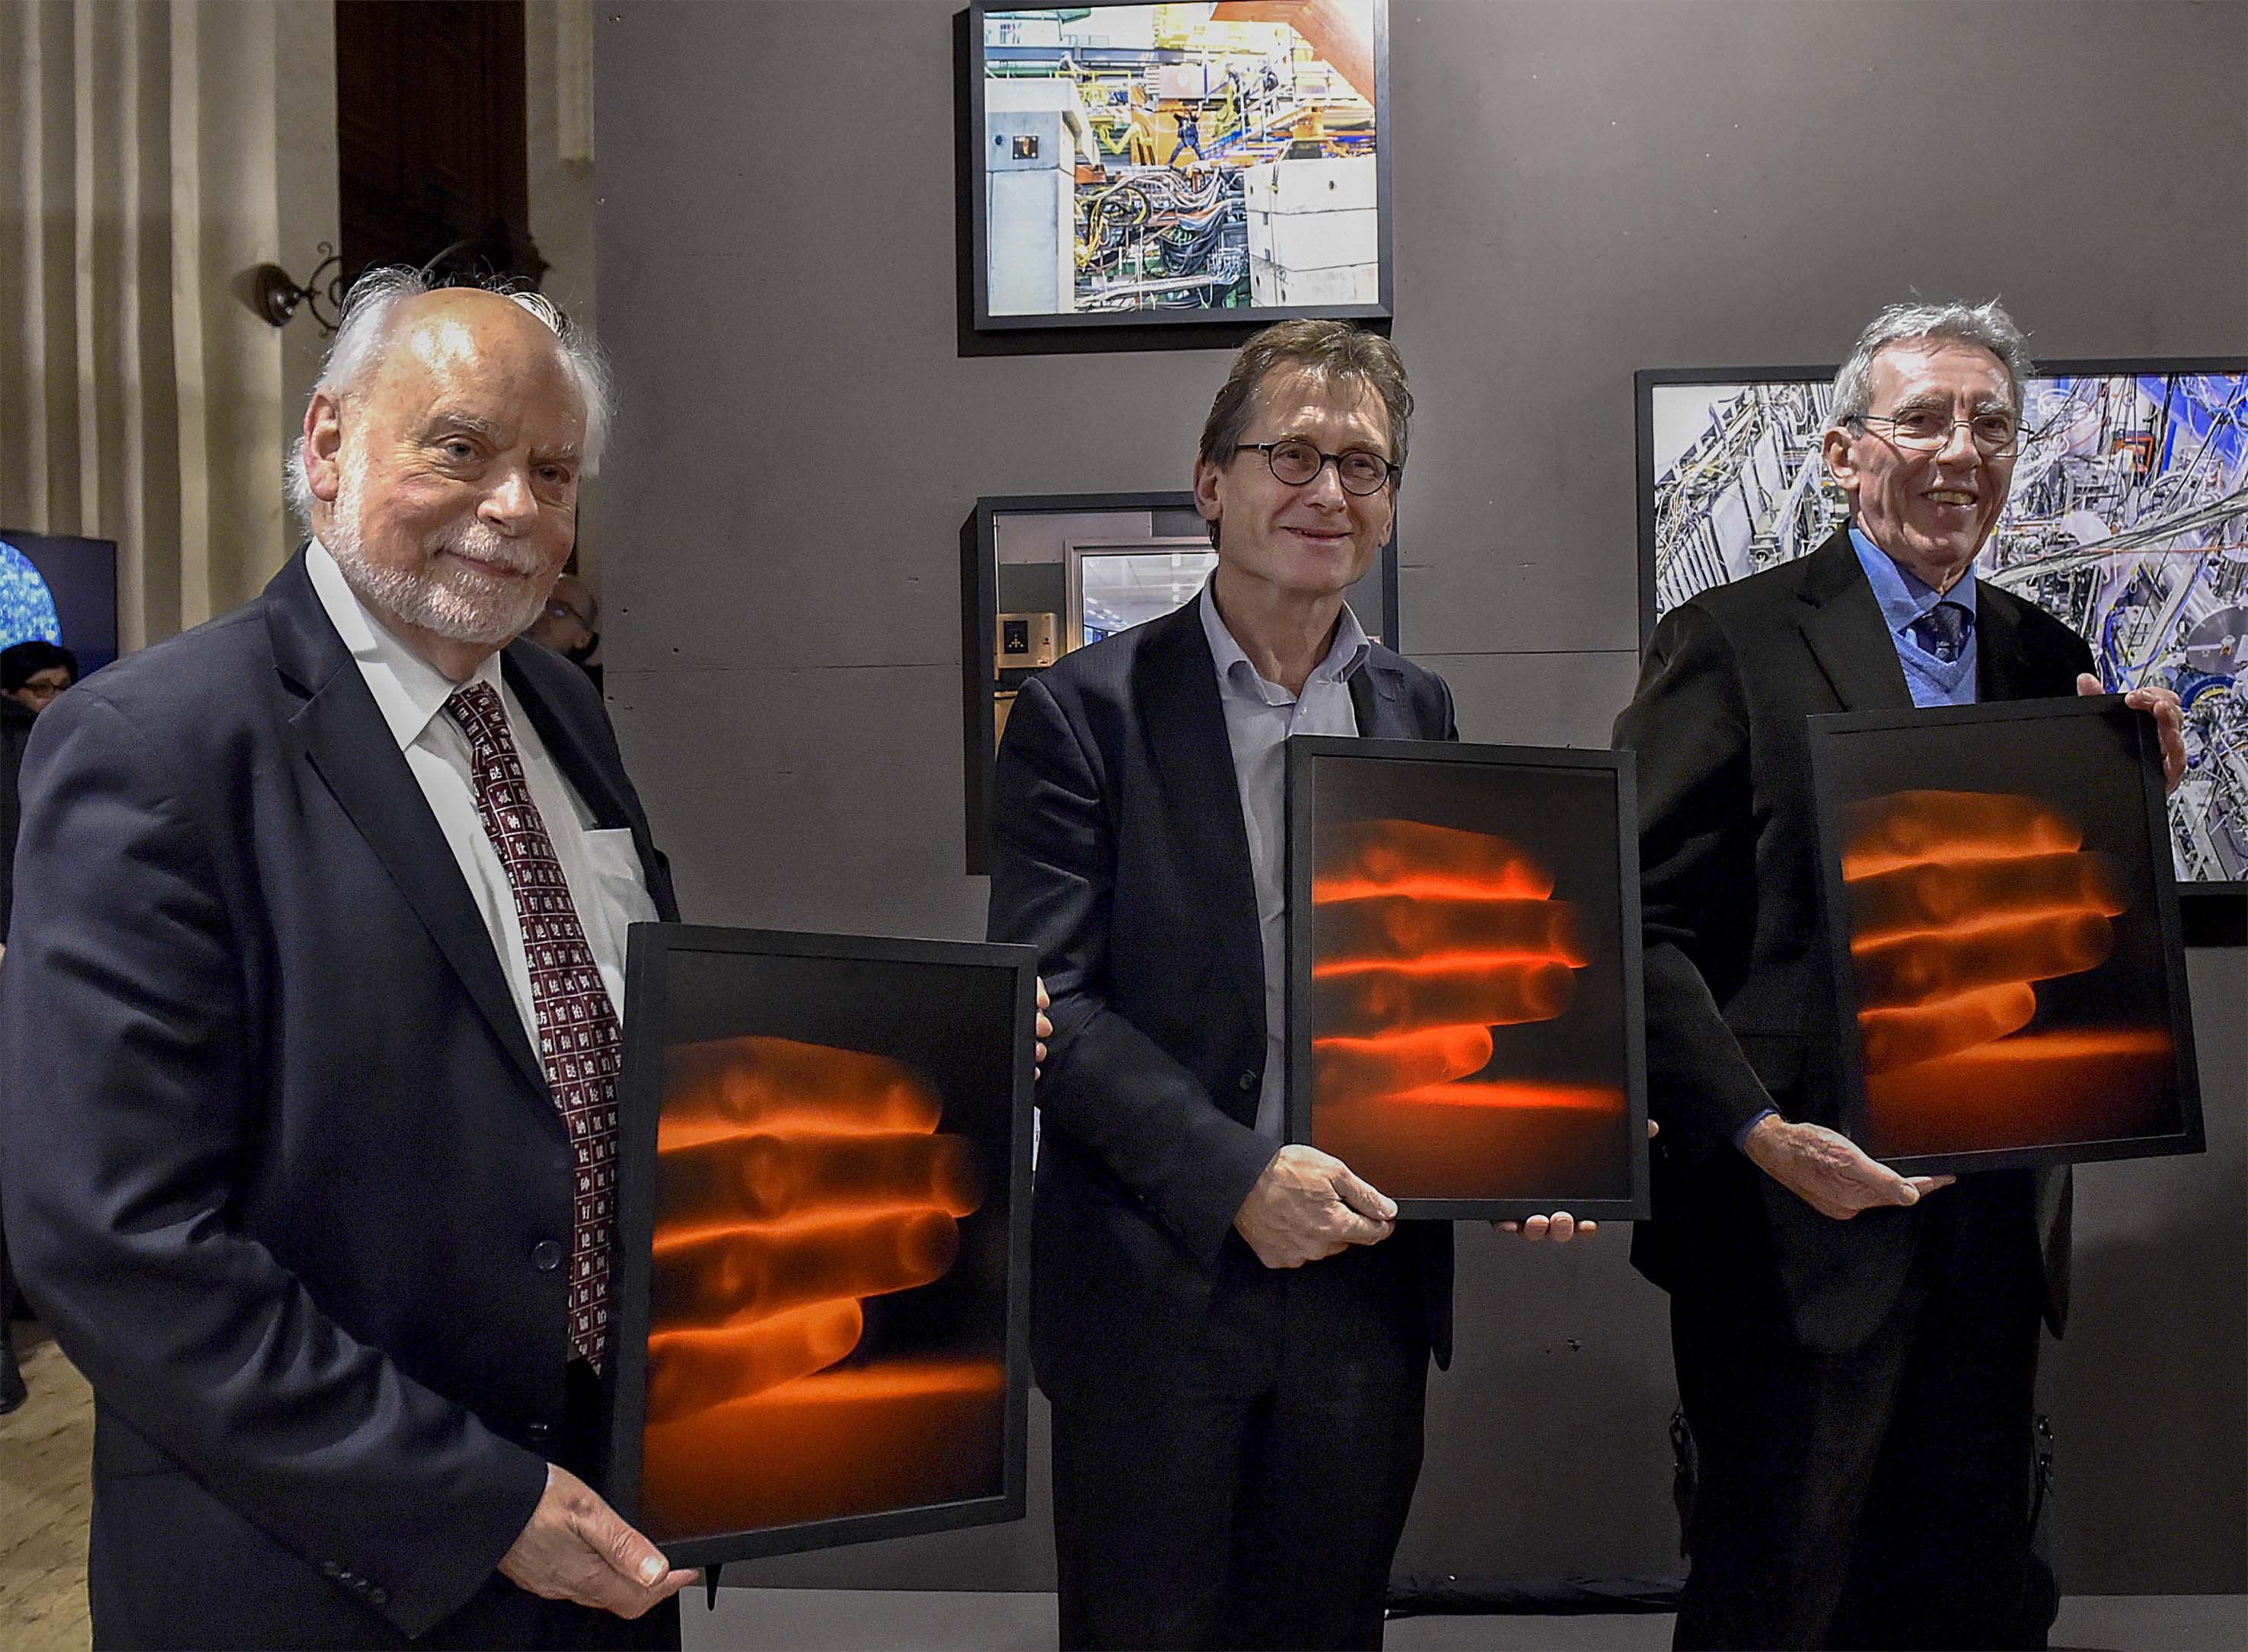 The 3 Nobel Prize Winners received a photo from the Playground project